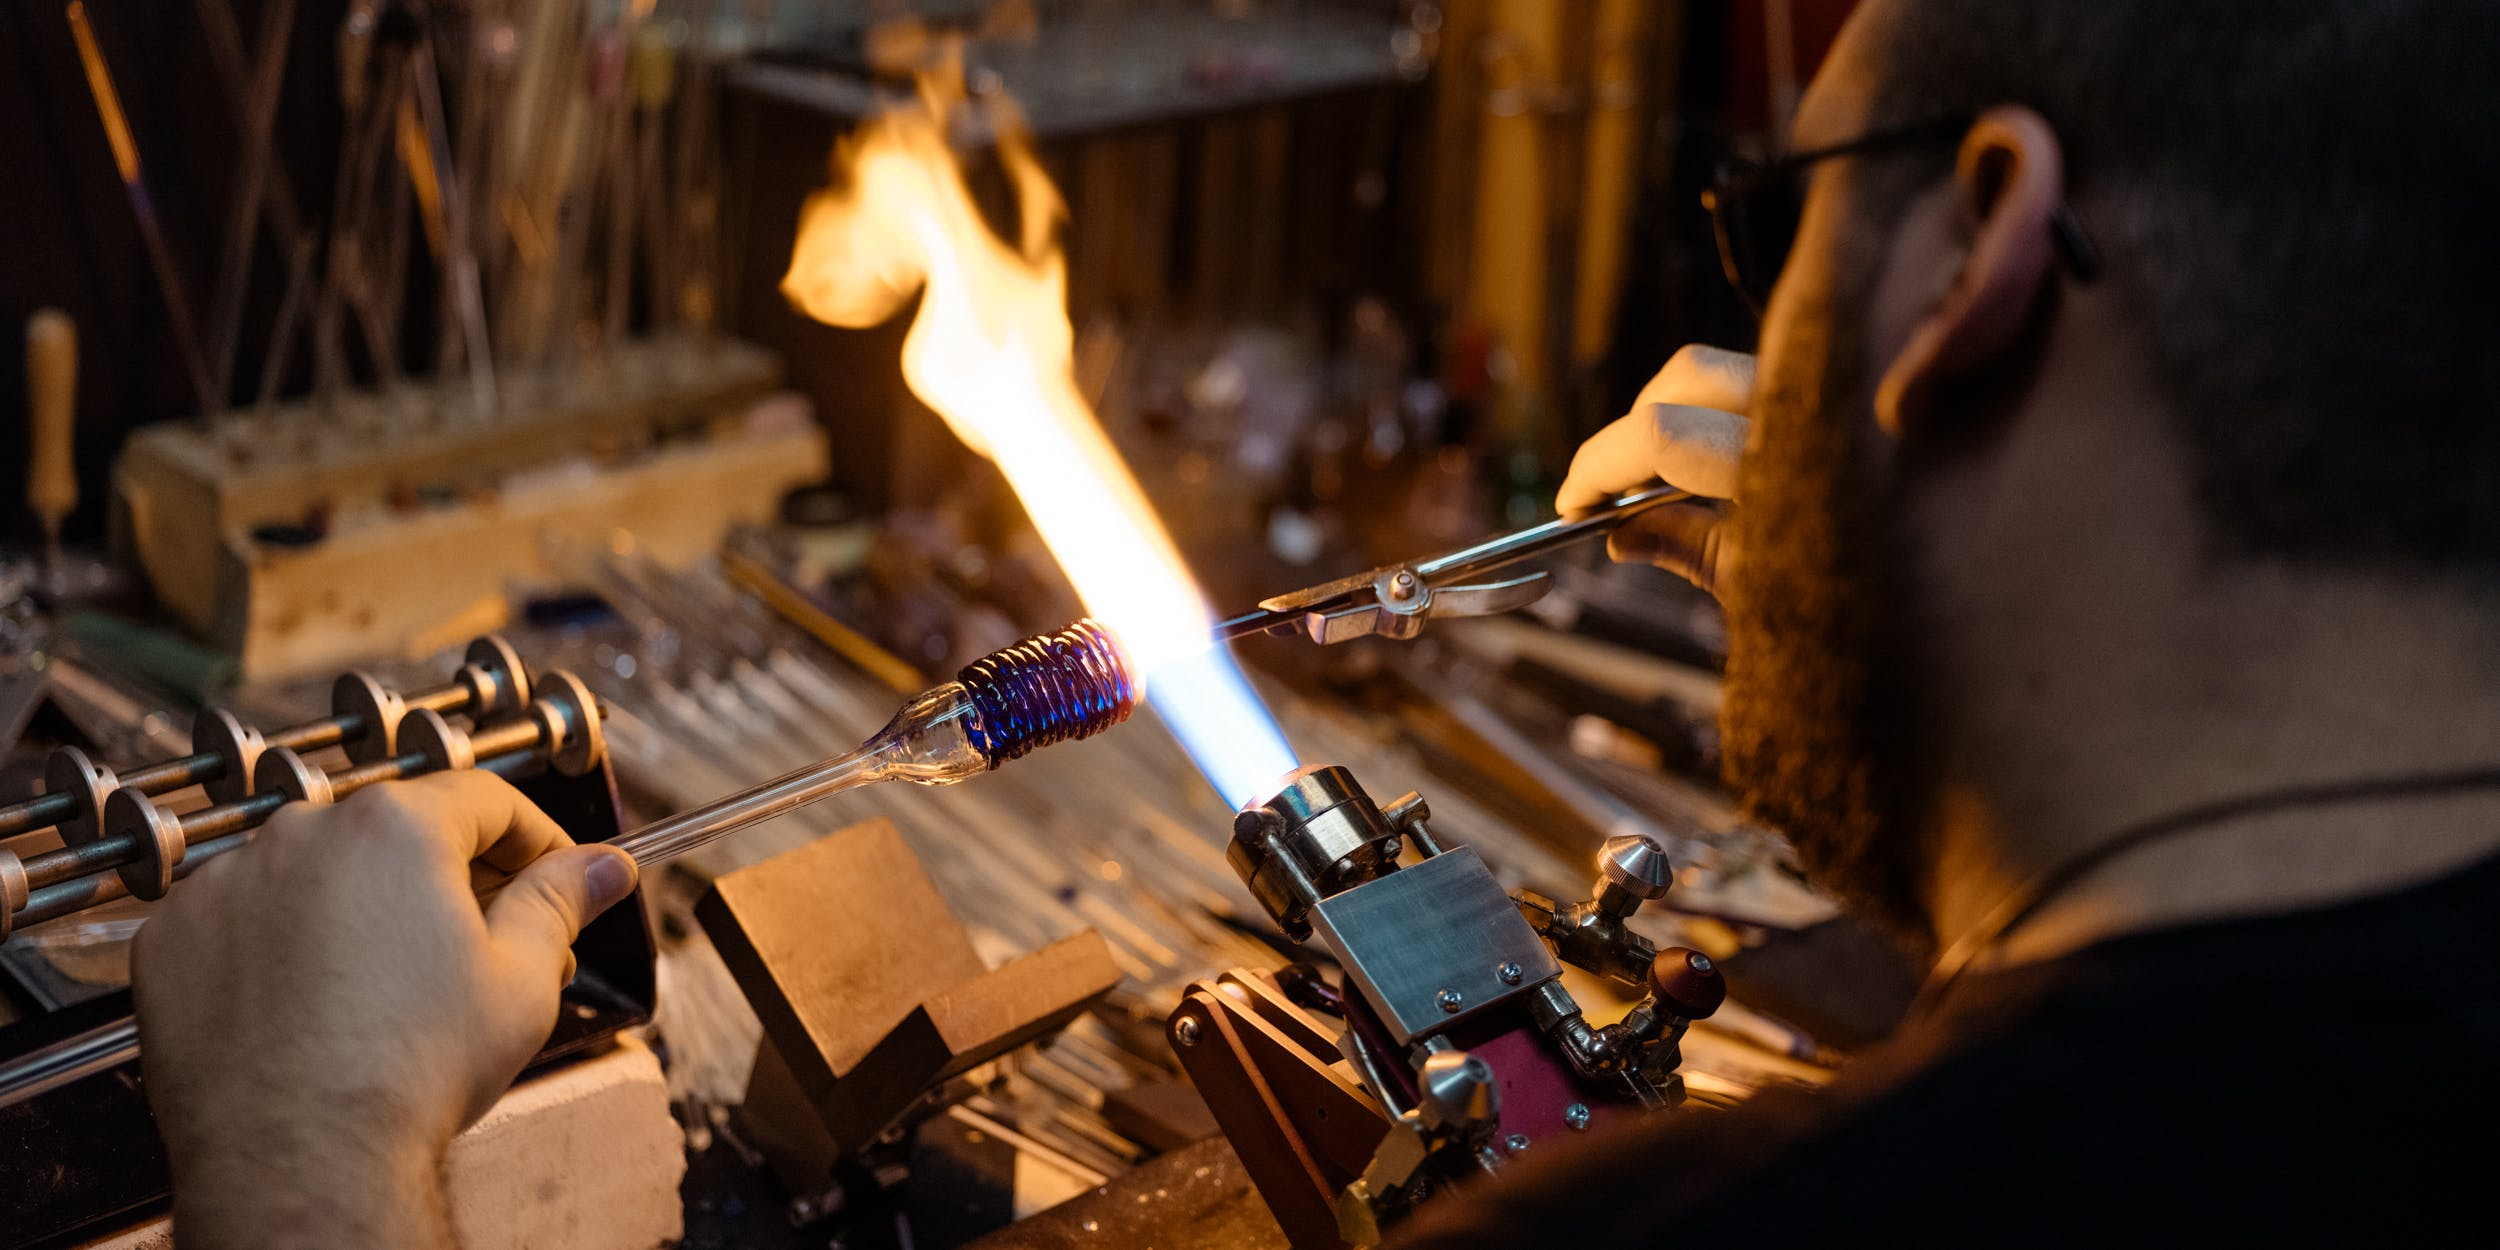 A glass blower from toronto flameworks teaches you how to make a bong